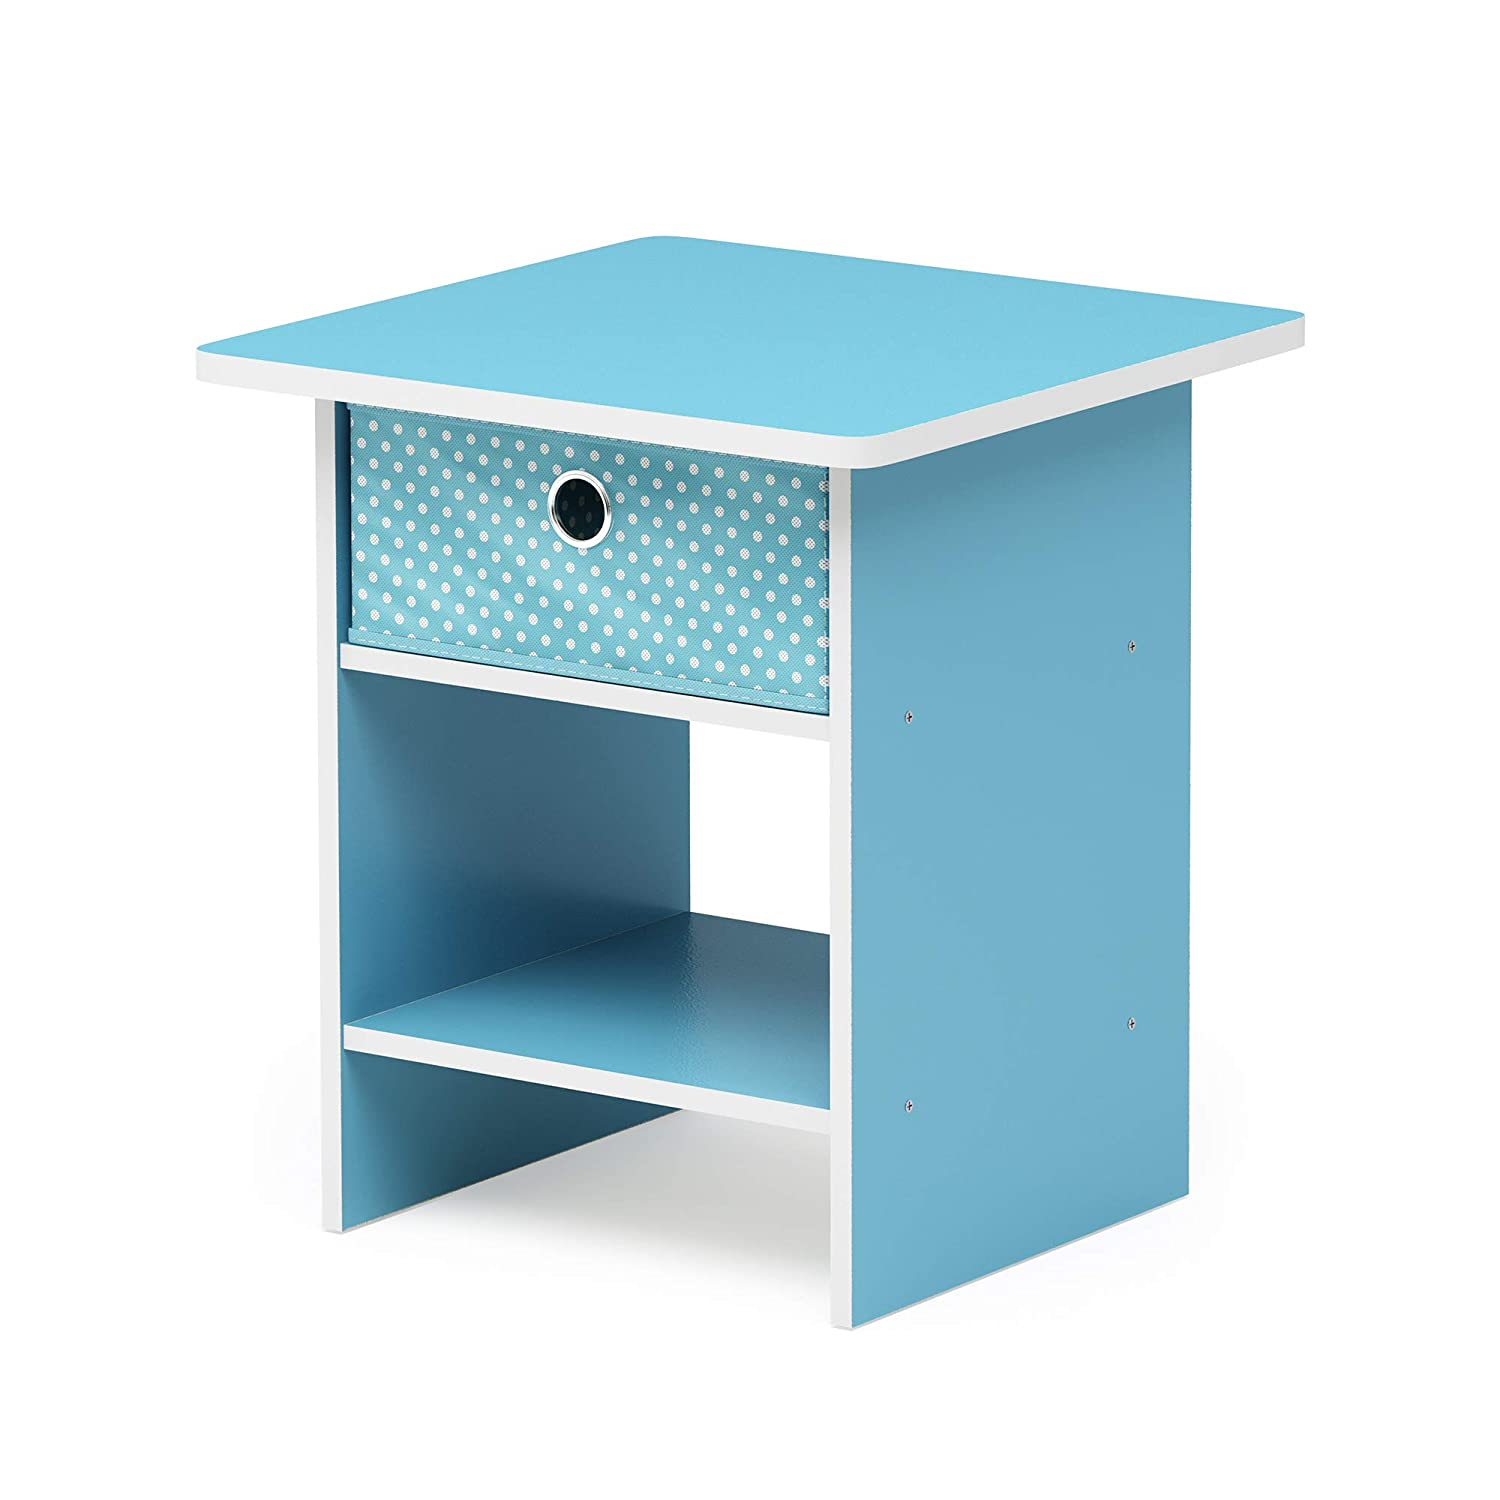 FURINNO Dario End Table/Night Stand Storage Shelf, 1-Pack, Light Blue/Light Blue